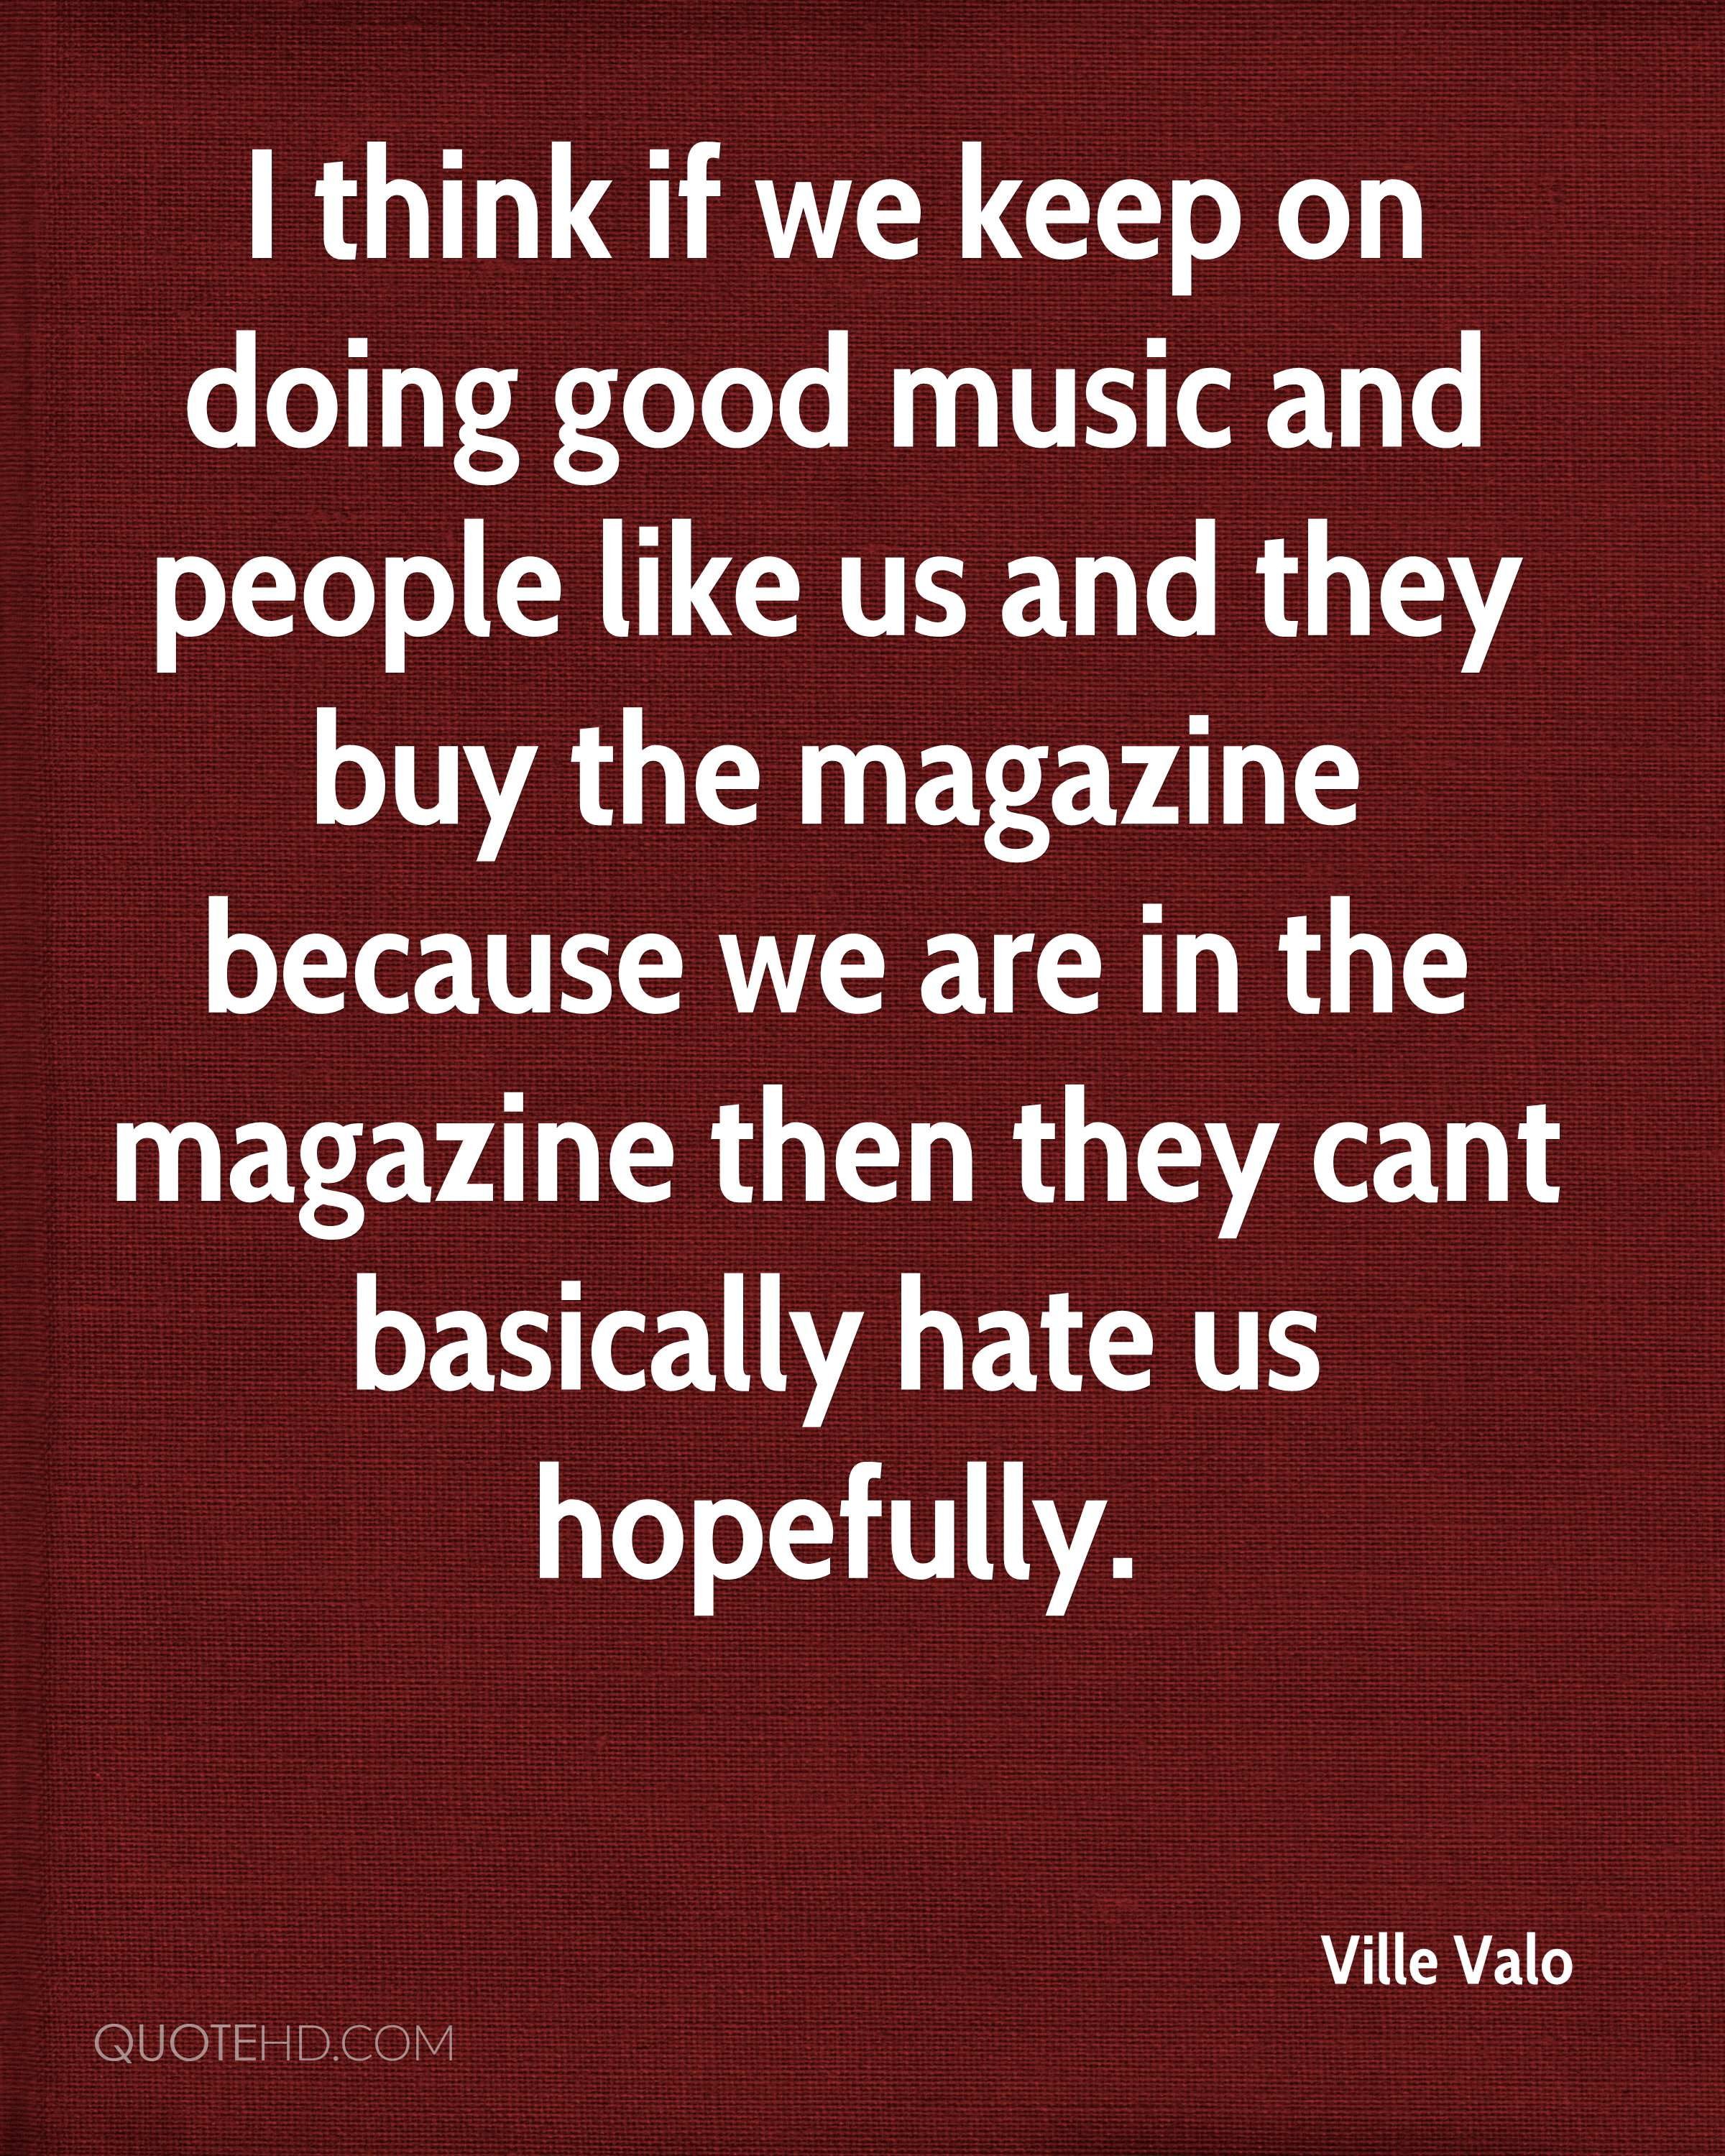 I think if we keep on doing good music and people like us and they buy the magazine because we are in the magazine then they cant basically hate us hopefully.